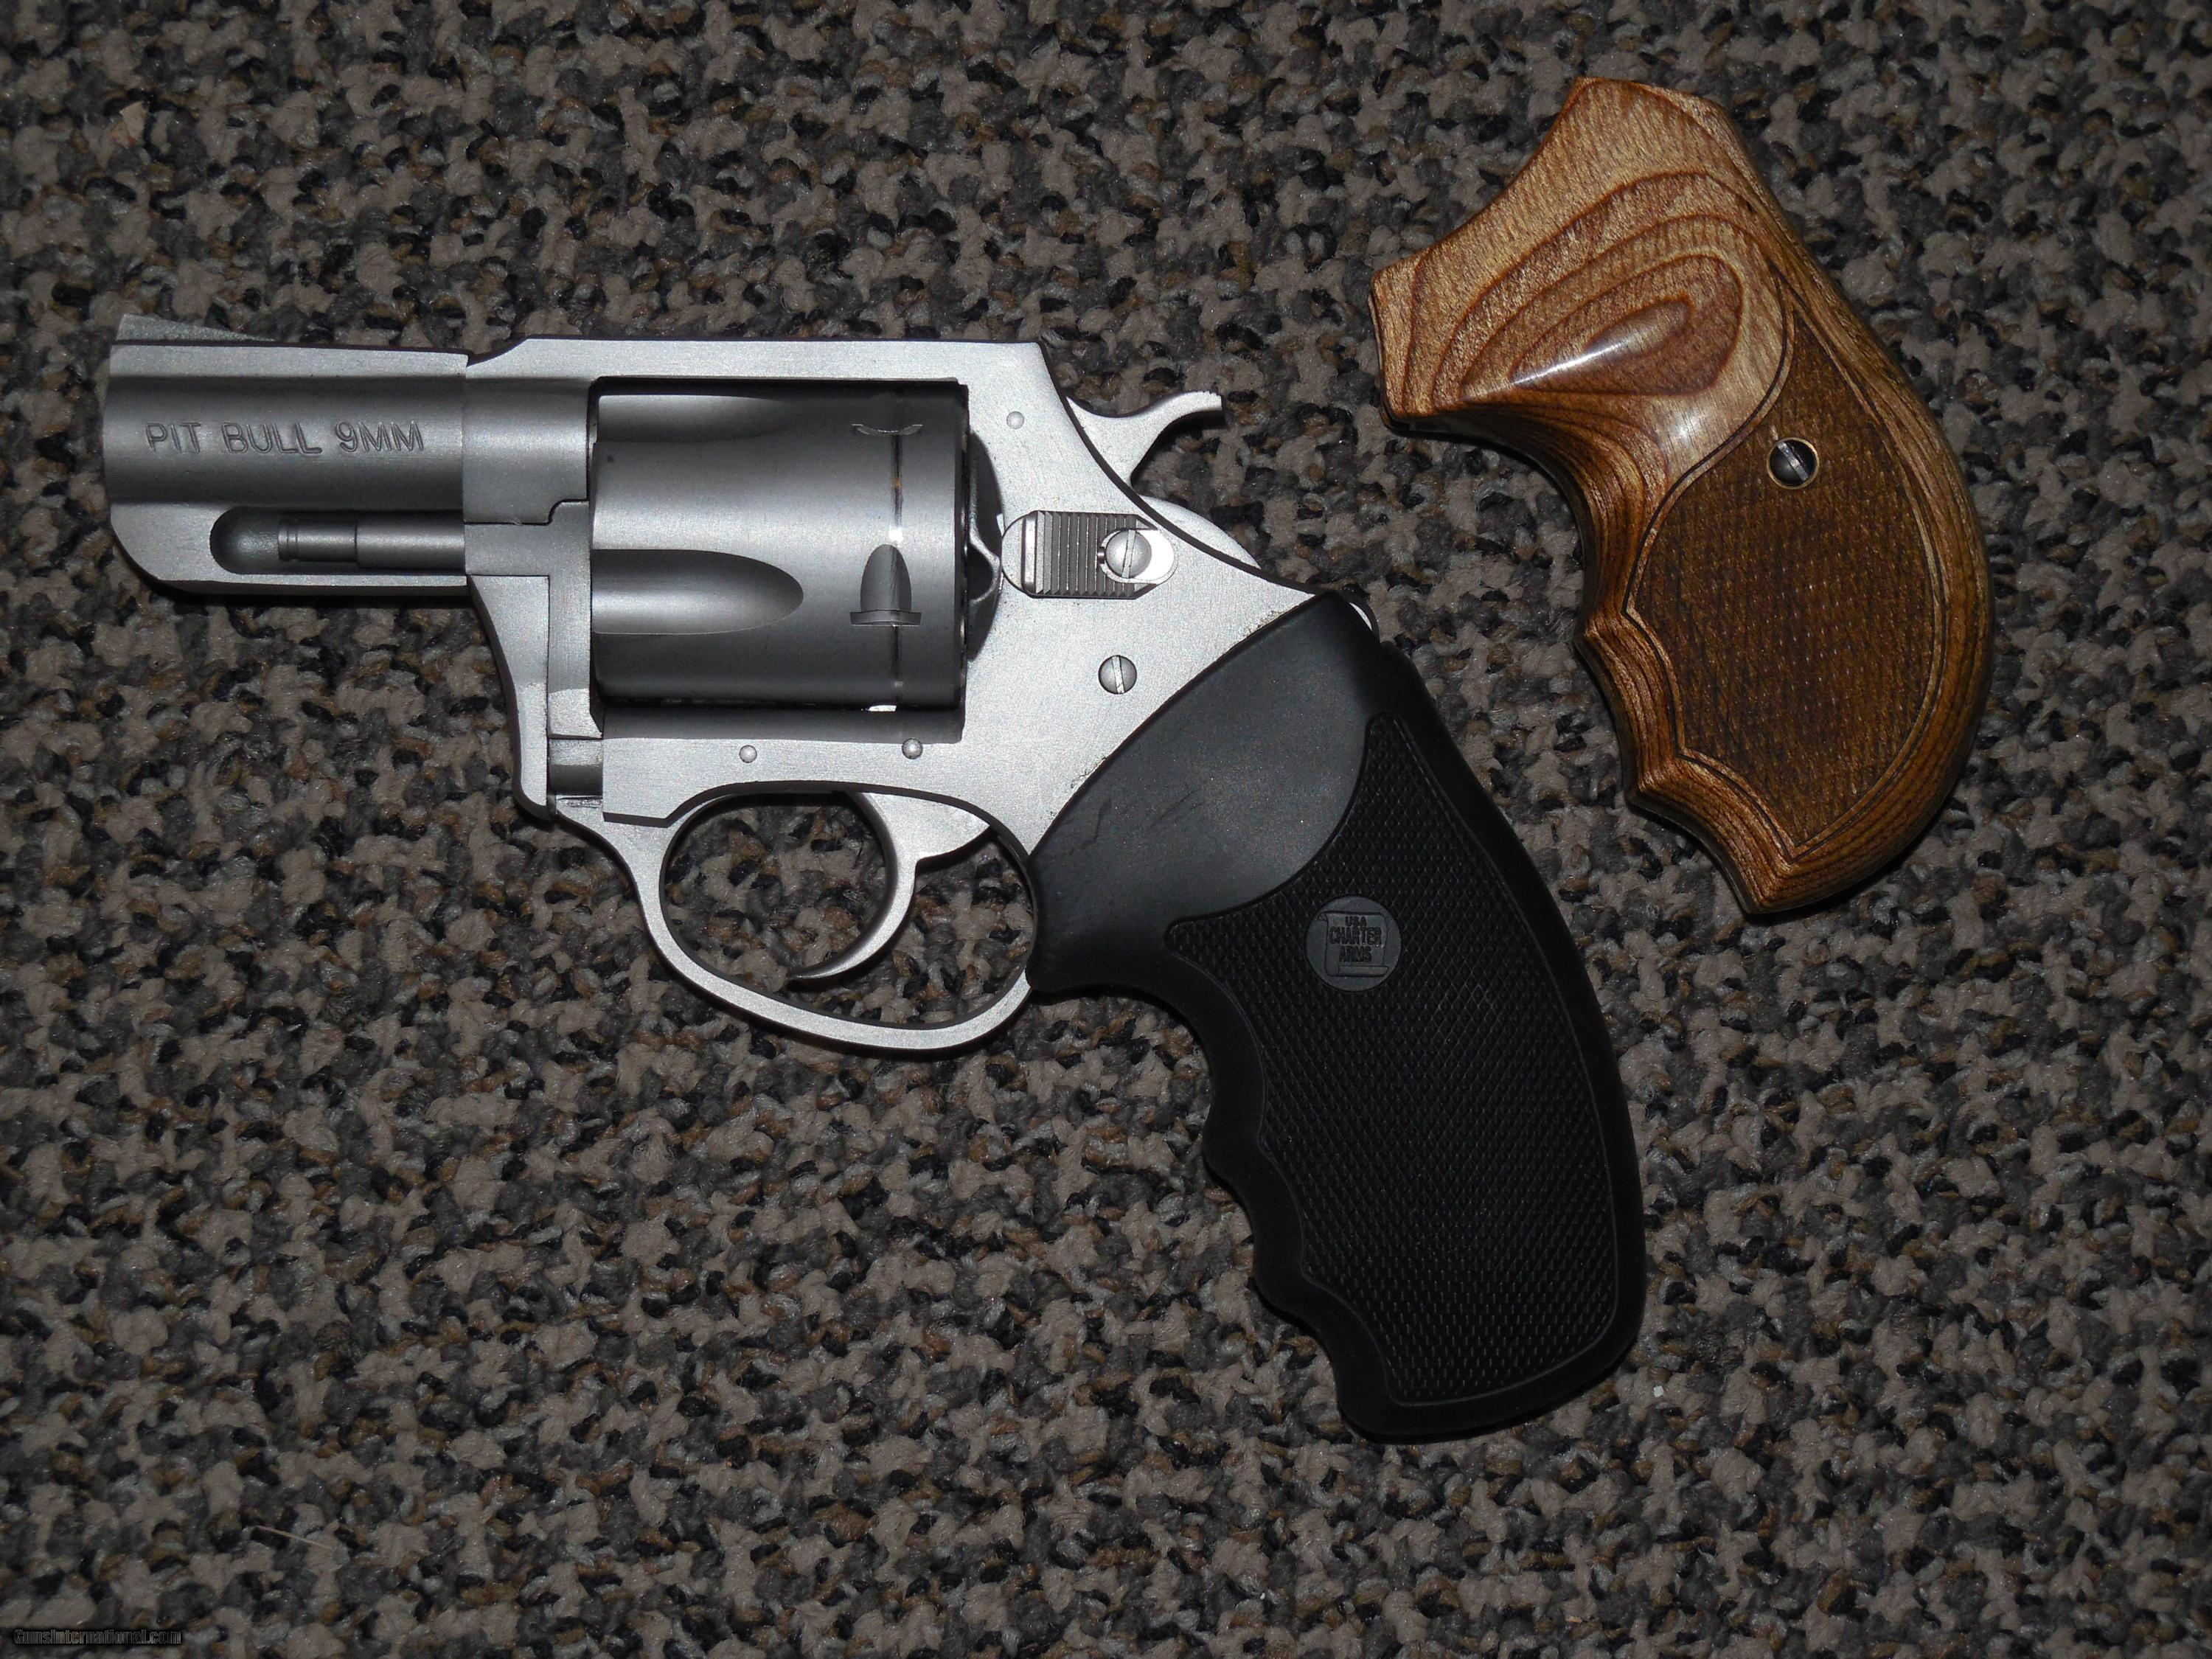 CHARTER ARMS PIT BULL 9 MM STAINLESS REVOLVER WITH EXTRA GRIPS